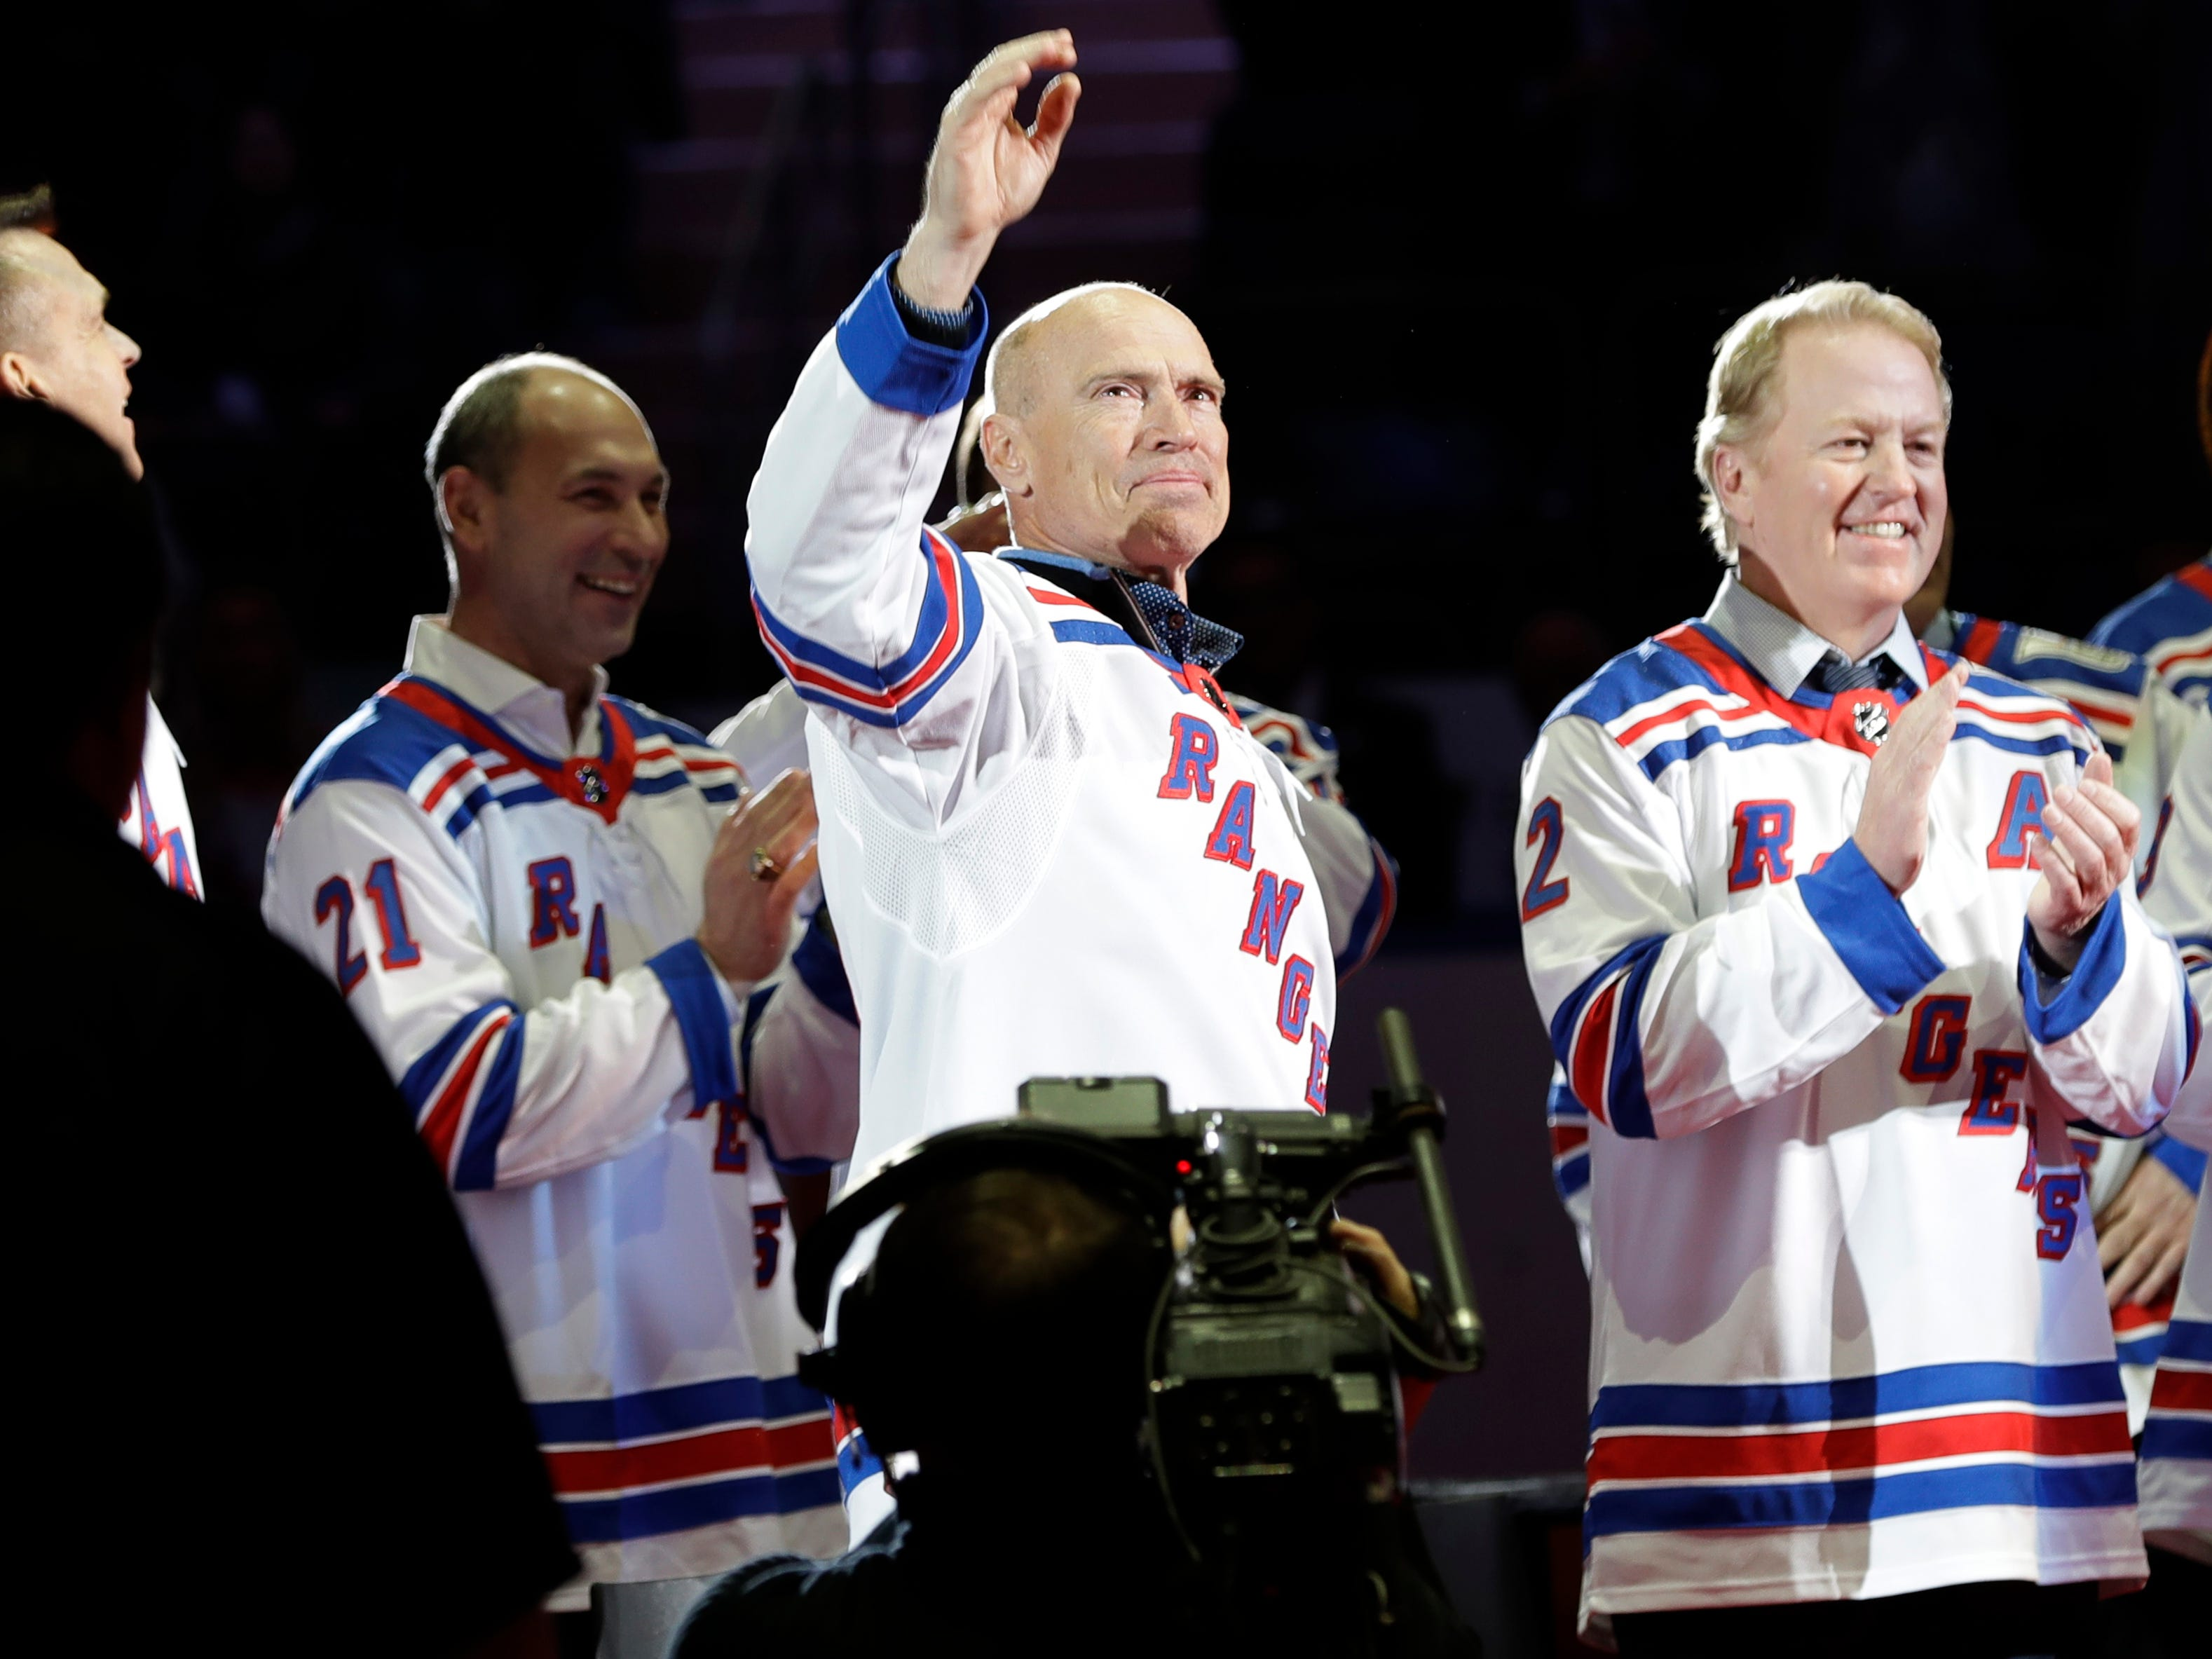 Mark Messier waves to fans, during an event to honor the 25th anniversary of the 1994 New York Rangers winning the Stanley Cup, before an NHL hockey game between the Rangers and the Carolina Hurricanes on Friday, Feb. 8, 2019, in New York.